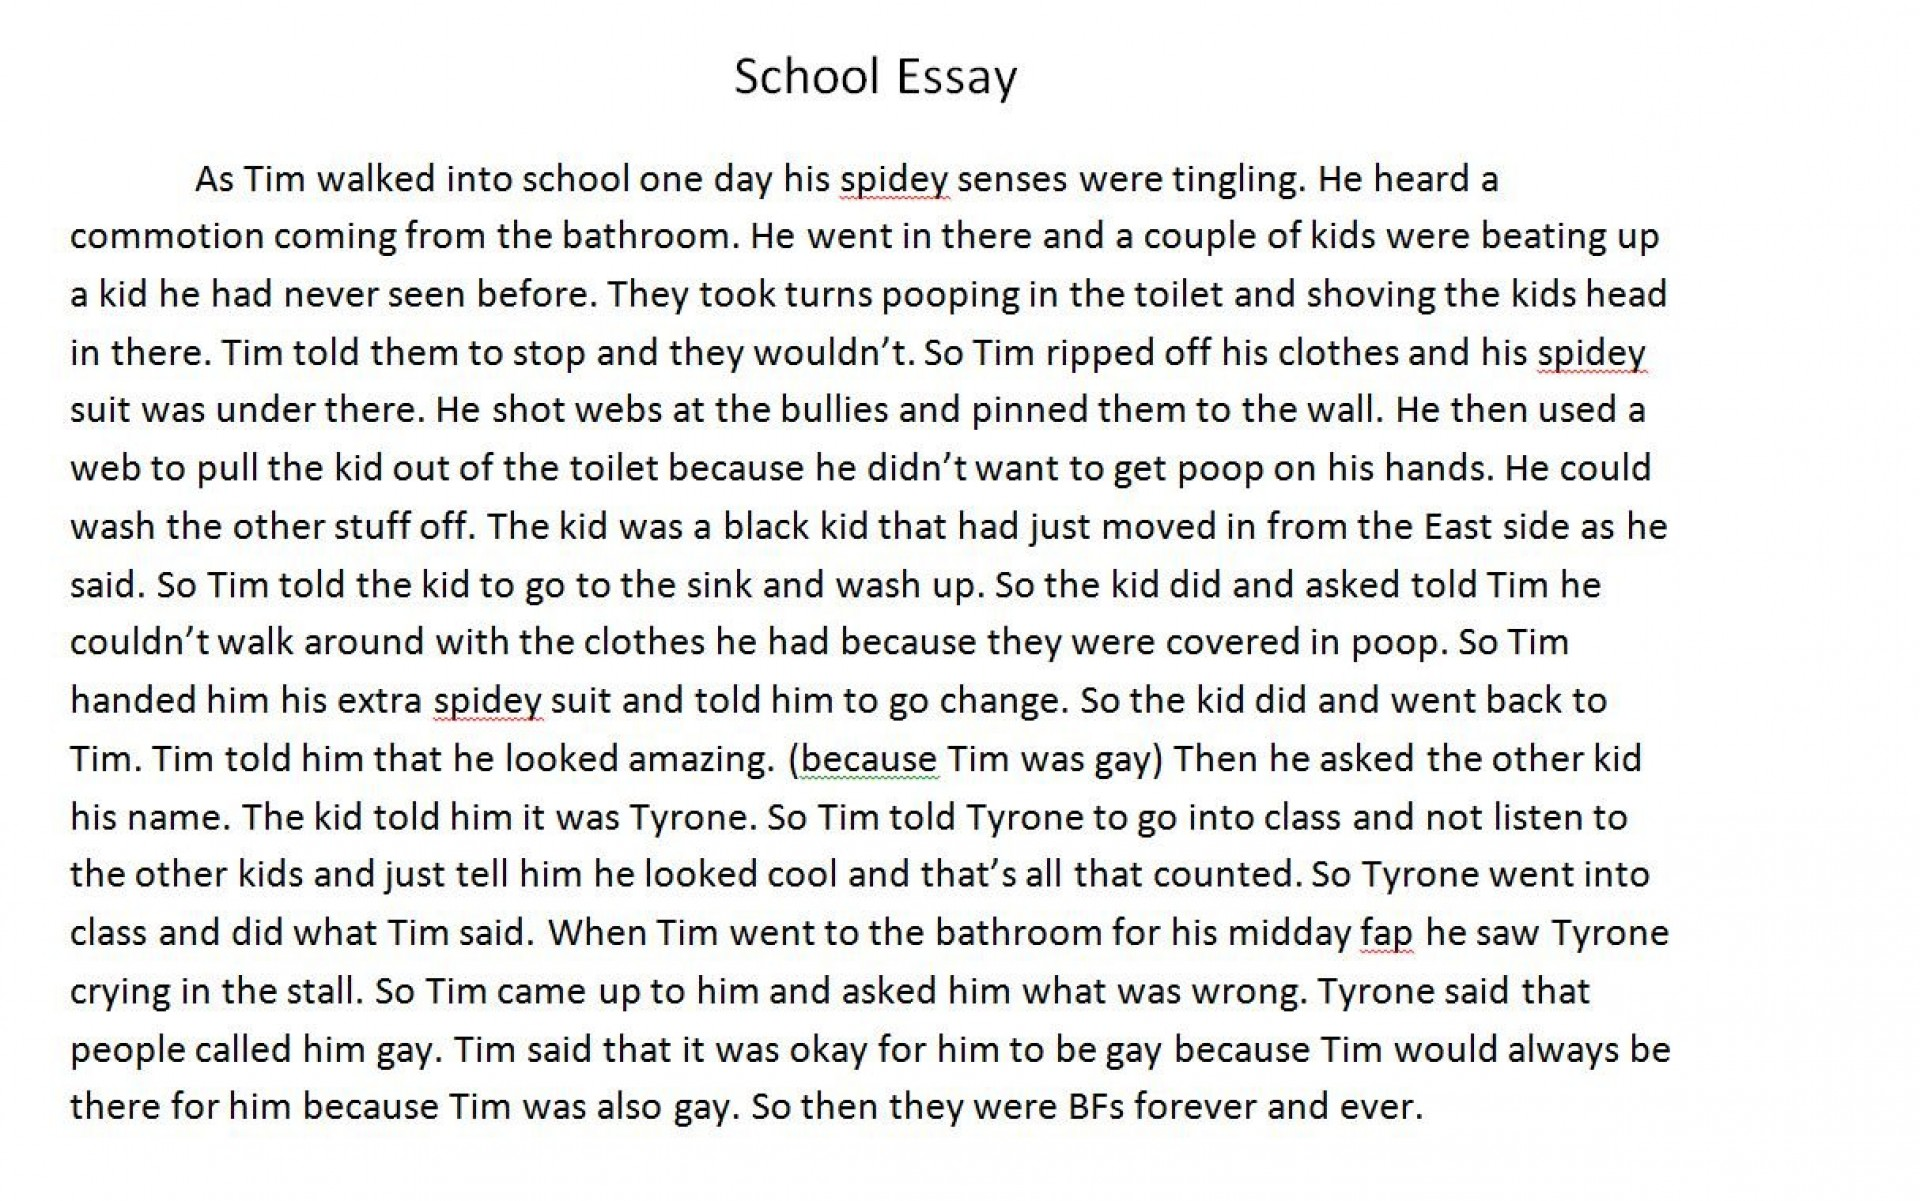 003 Essay Example Fddb74 3451752 About Phenomenal A School Narrative Trip Elementary Experience New Boy At 1920